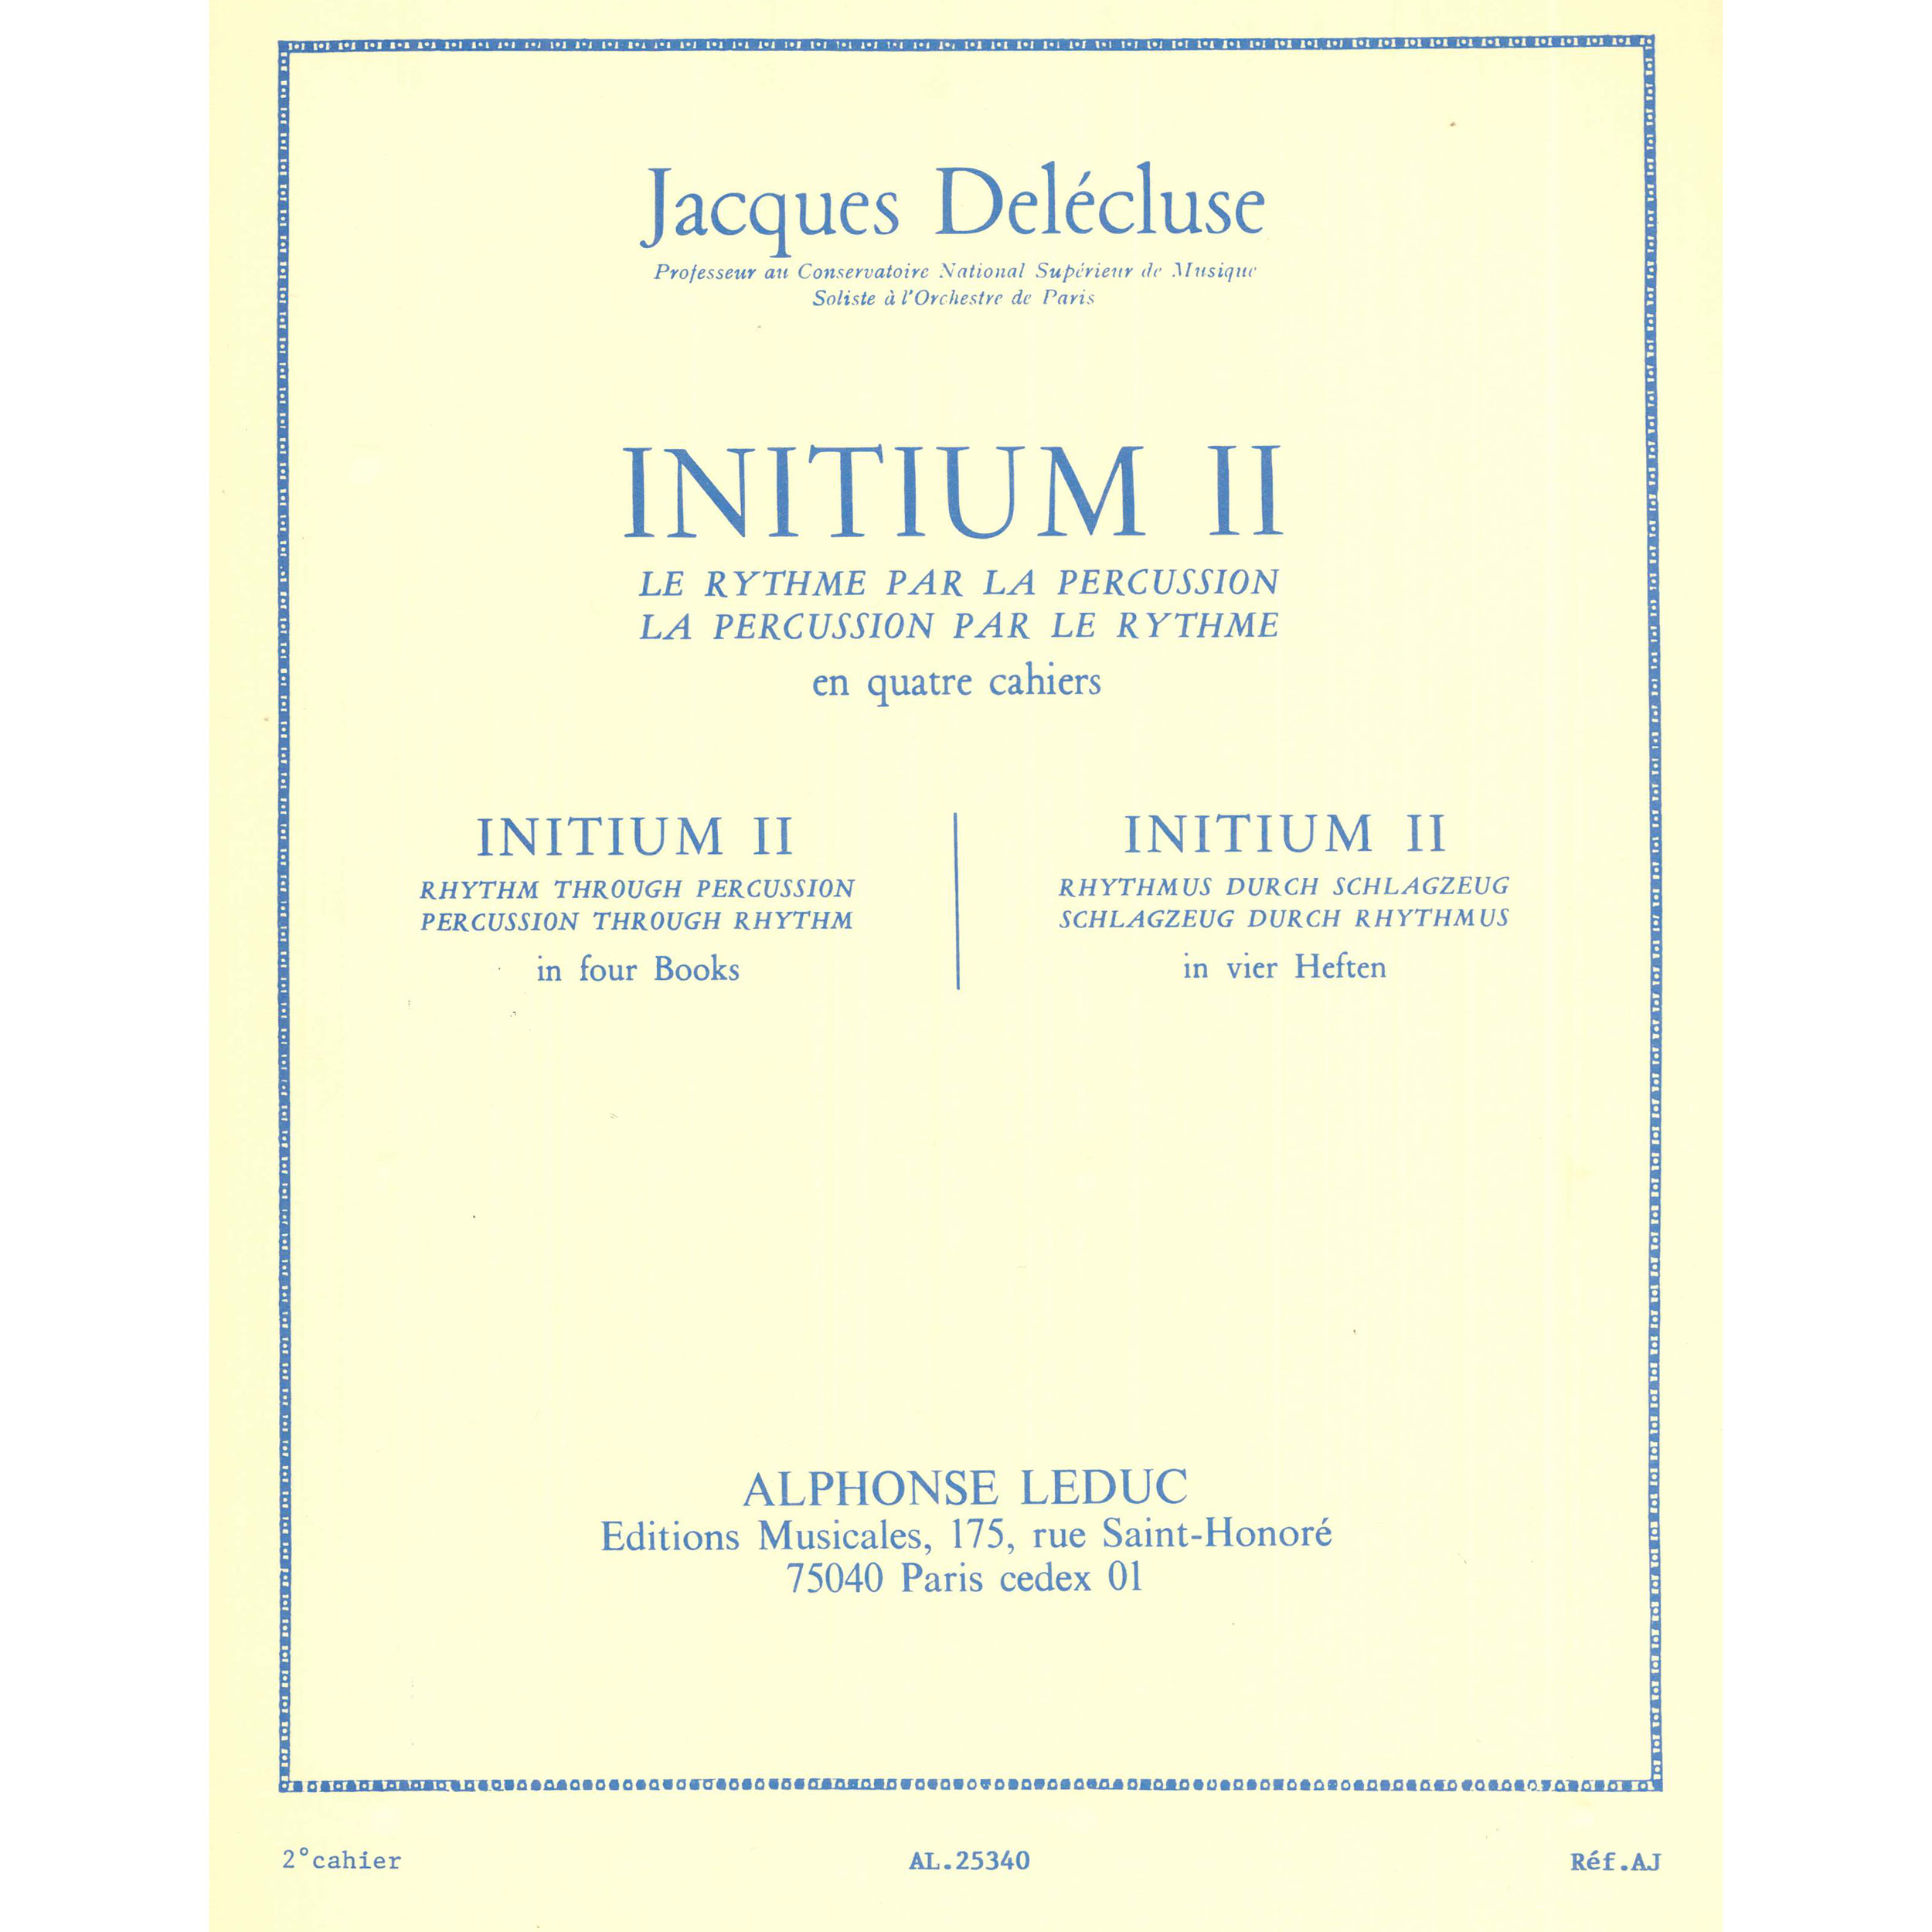 Initium II by Jacques Delecluse